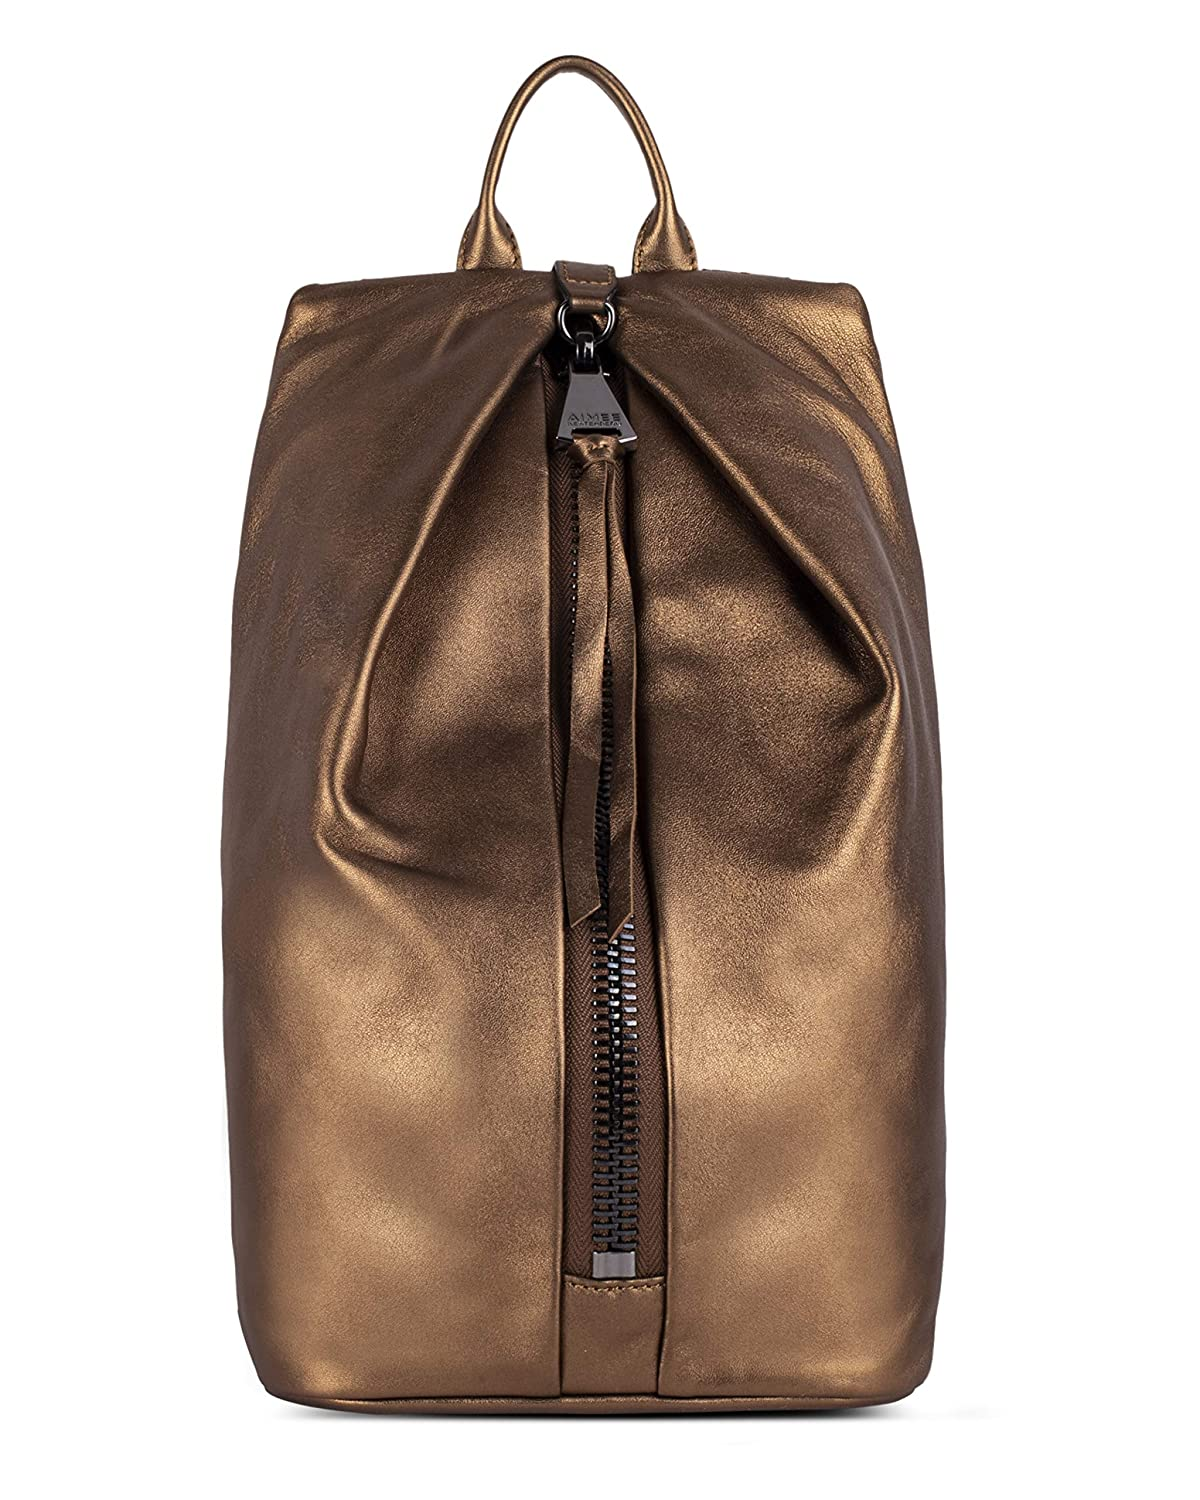 Image of Aimee Kestenberg Tamitha Backpack Casual Daypacks